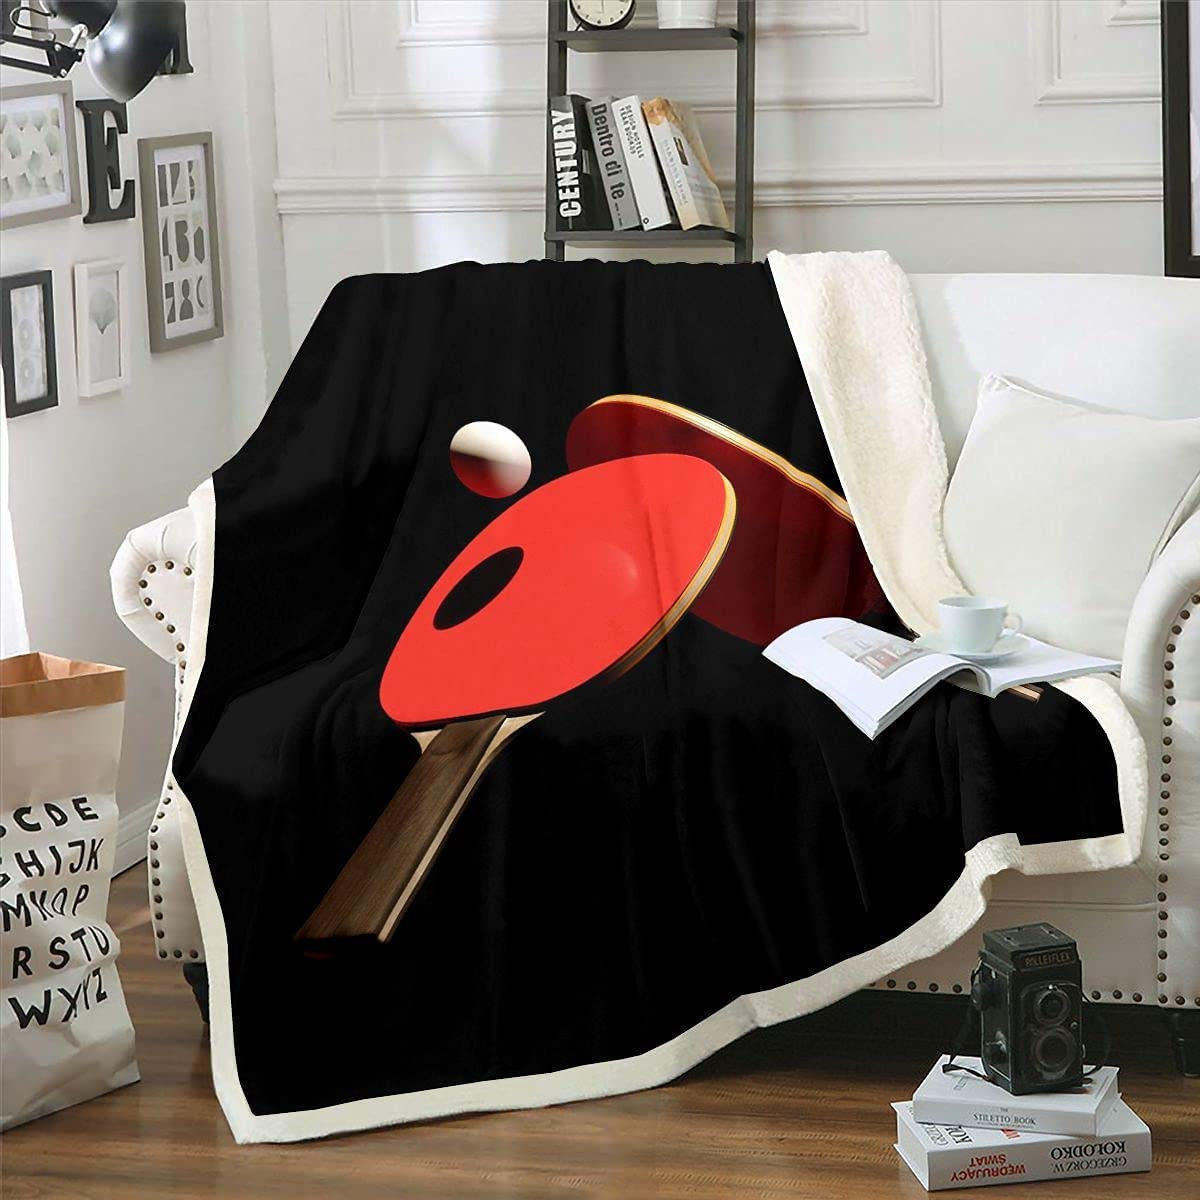 Erosebridal Table Tennis Sherpa Blanket Adults Kids Teens New Free Shipping Max 66% OFF for Pi